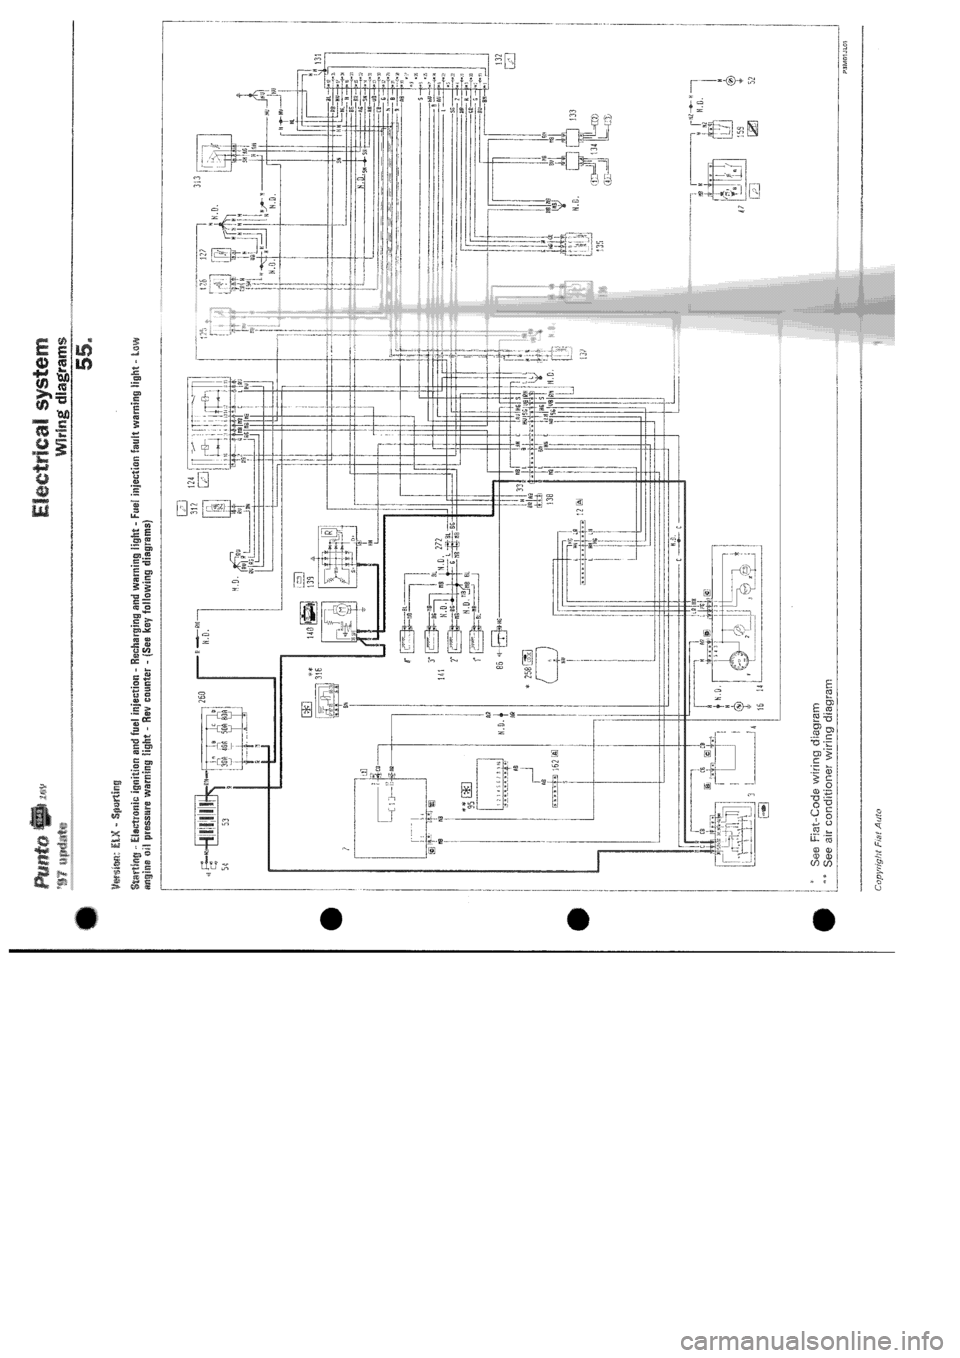 wrg 4274 fiat ducato wiring diagram. Black Bedroom Furniture Sets. Home Design Ideas